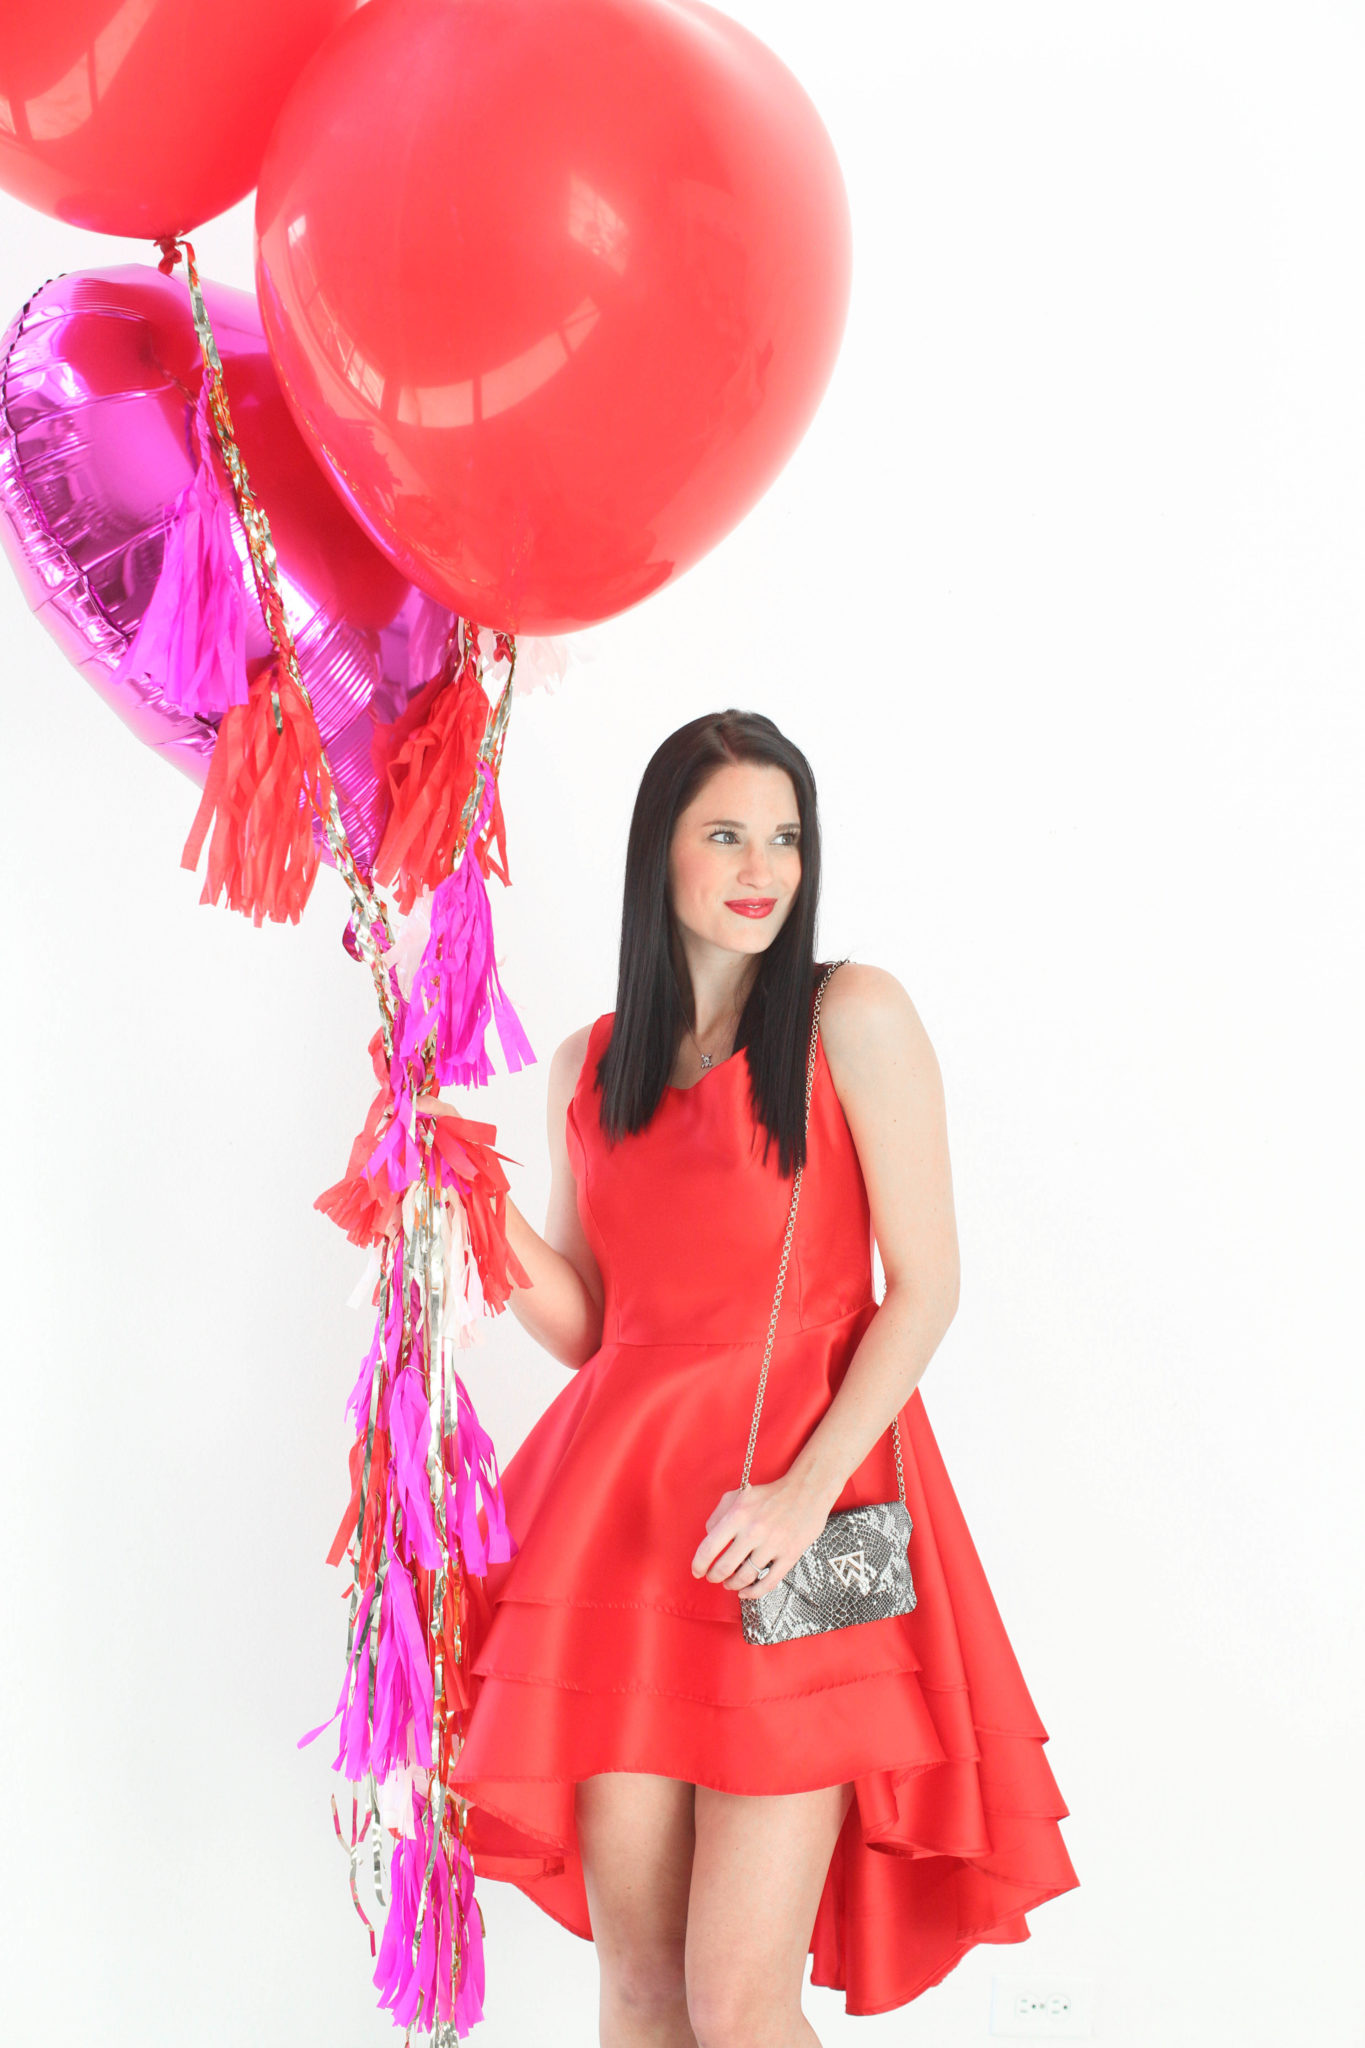 12 Must Have Little Red Dresses for Galentine's Day | classy red dresses | red dress outfit | valentine's day outfit | Valentine's Day dress || Dressed to Kill #reddress #valentinedress #valentineoutfit |Little Red Dresses for Galentine's Day by top US fashion blog, Dressed to Kill: image of a woman holding balloons and wearing a Jill Jill Stuart red dress, Kelly Wynne bag and Steve Madden shoes